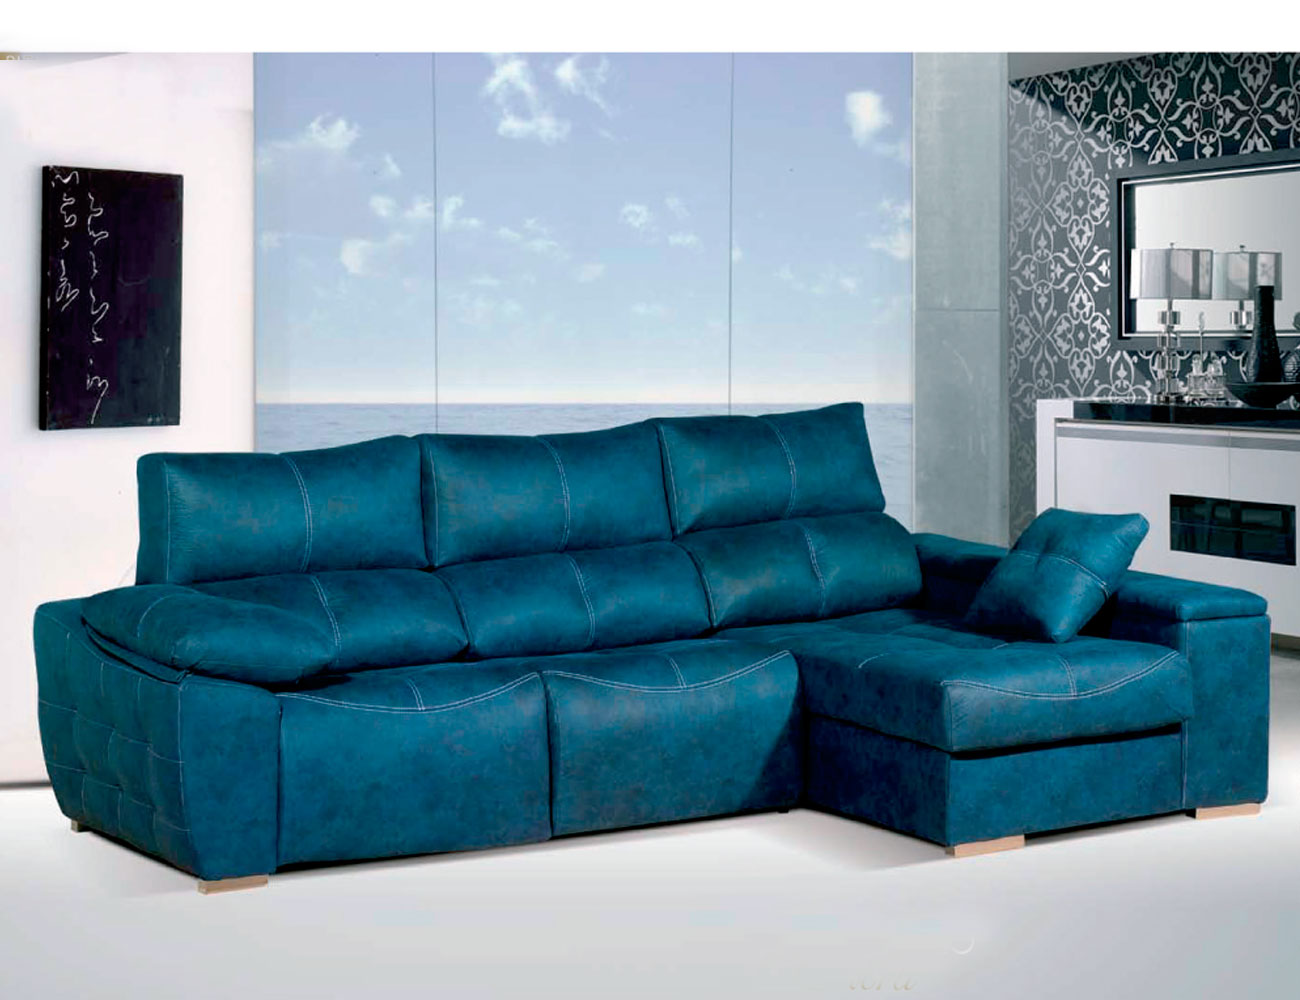 Sofa chaiselongue relax 2 motores anti manchas turquesa48